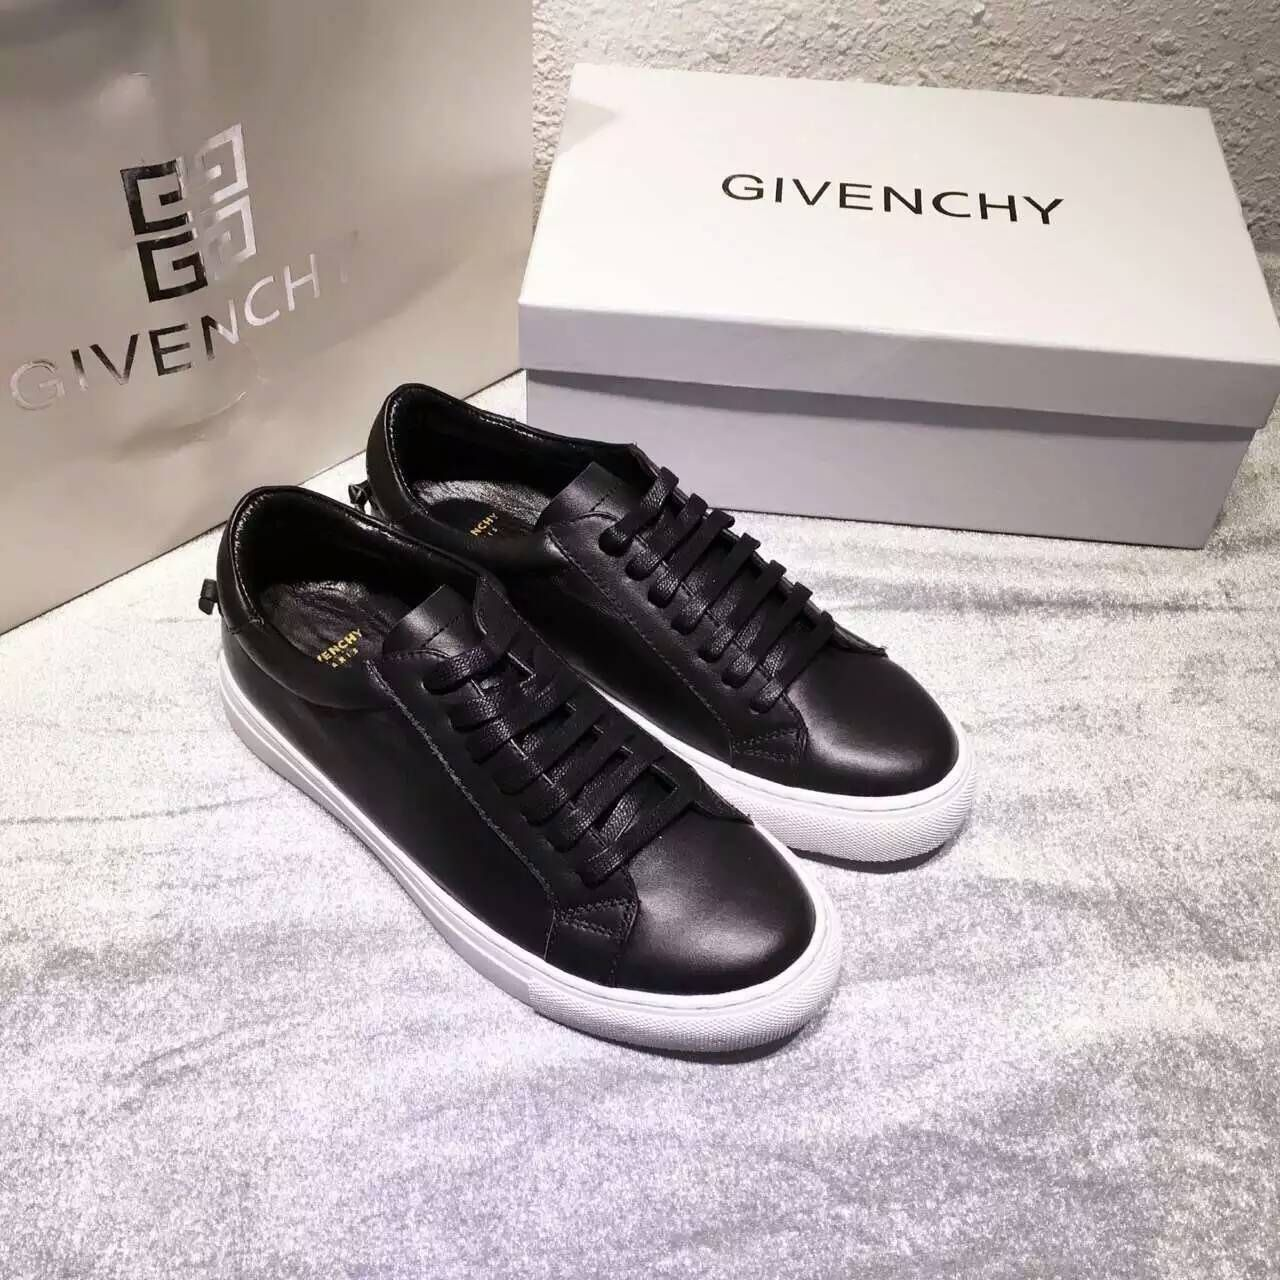 S S 2016 Givenchy Collection Outlet-Givenchy  Paris 17  Black Leather Low  Top Sneakers 62961c14d7